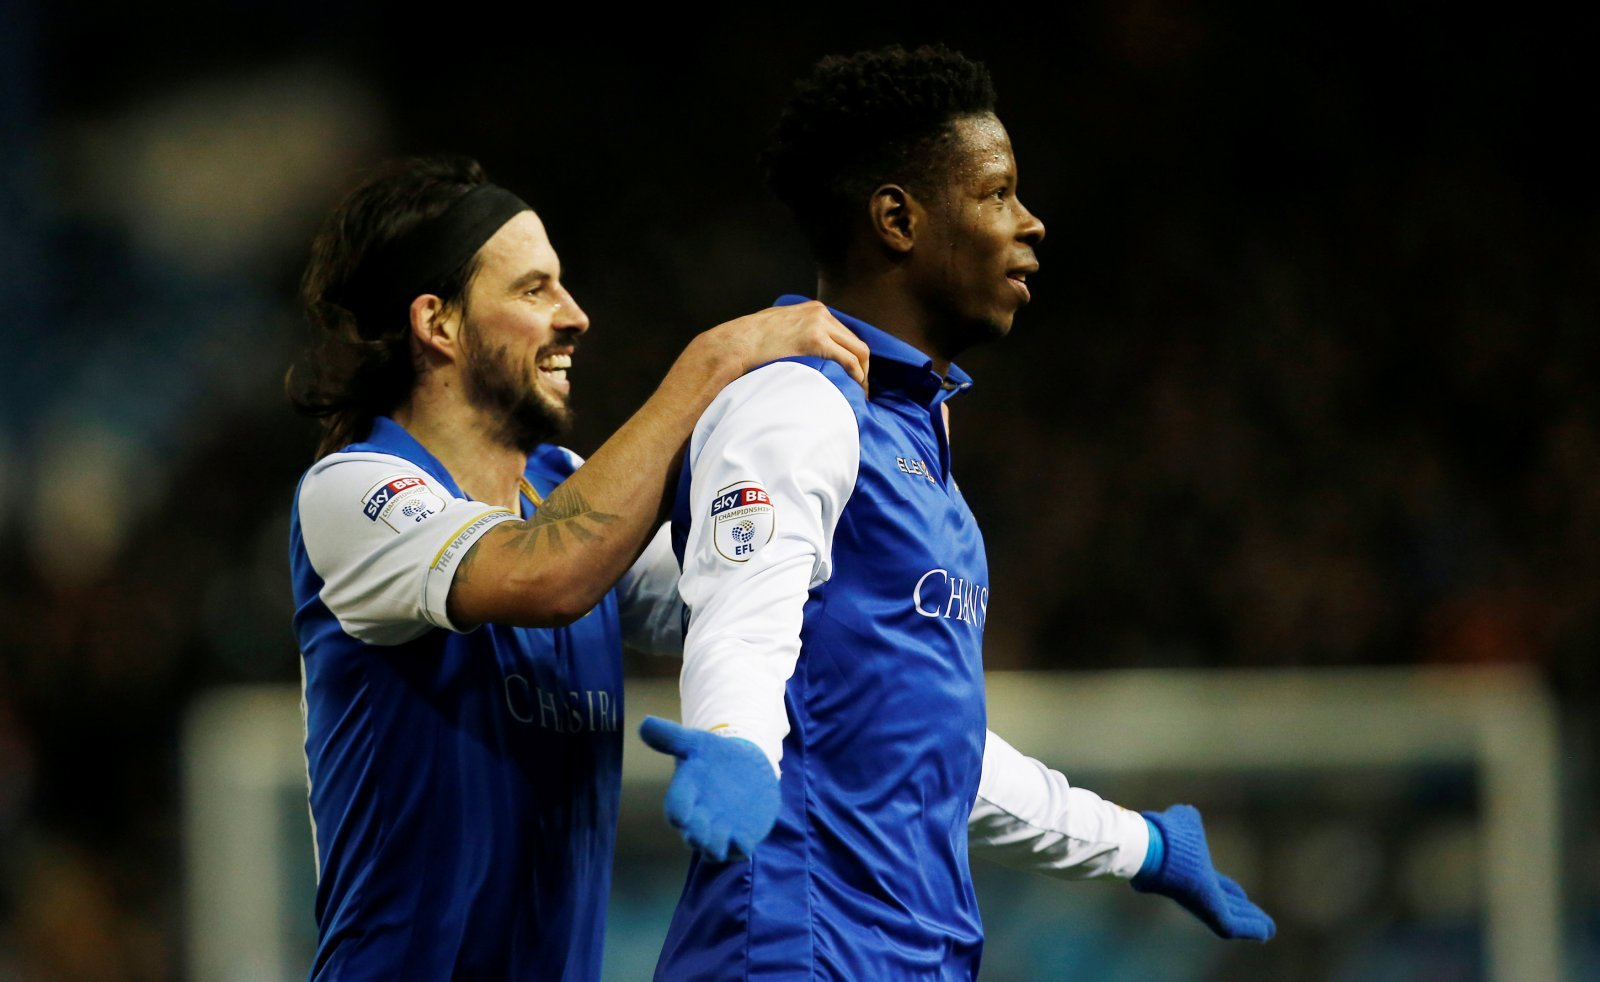 Sheffield Wednesday: Bruce should go through with selling Lucas Joao in the summer